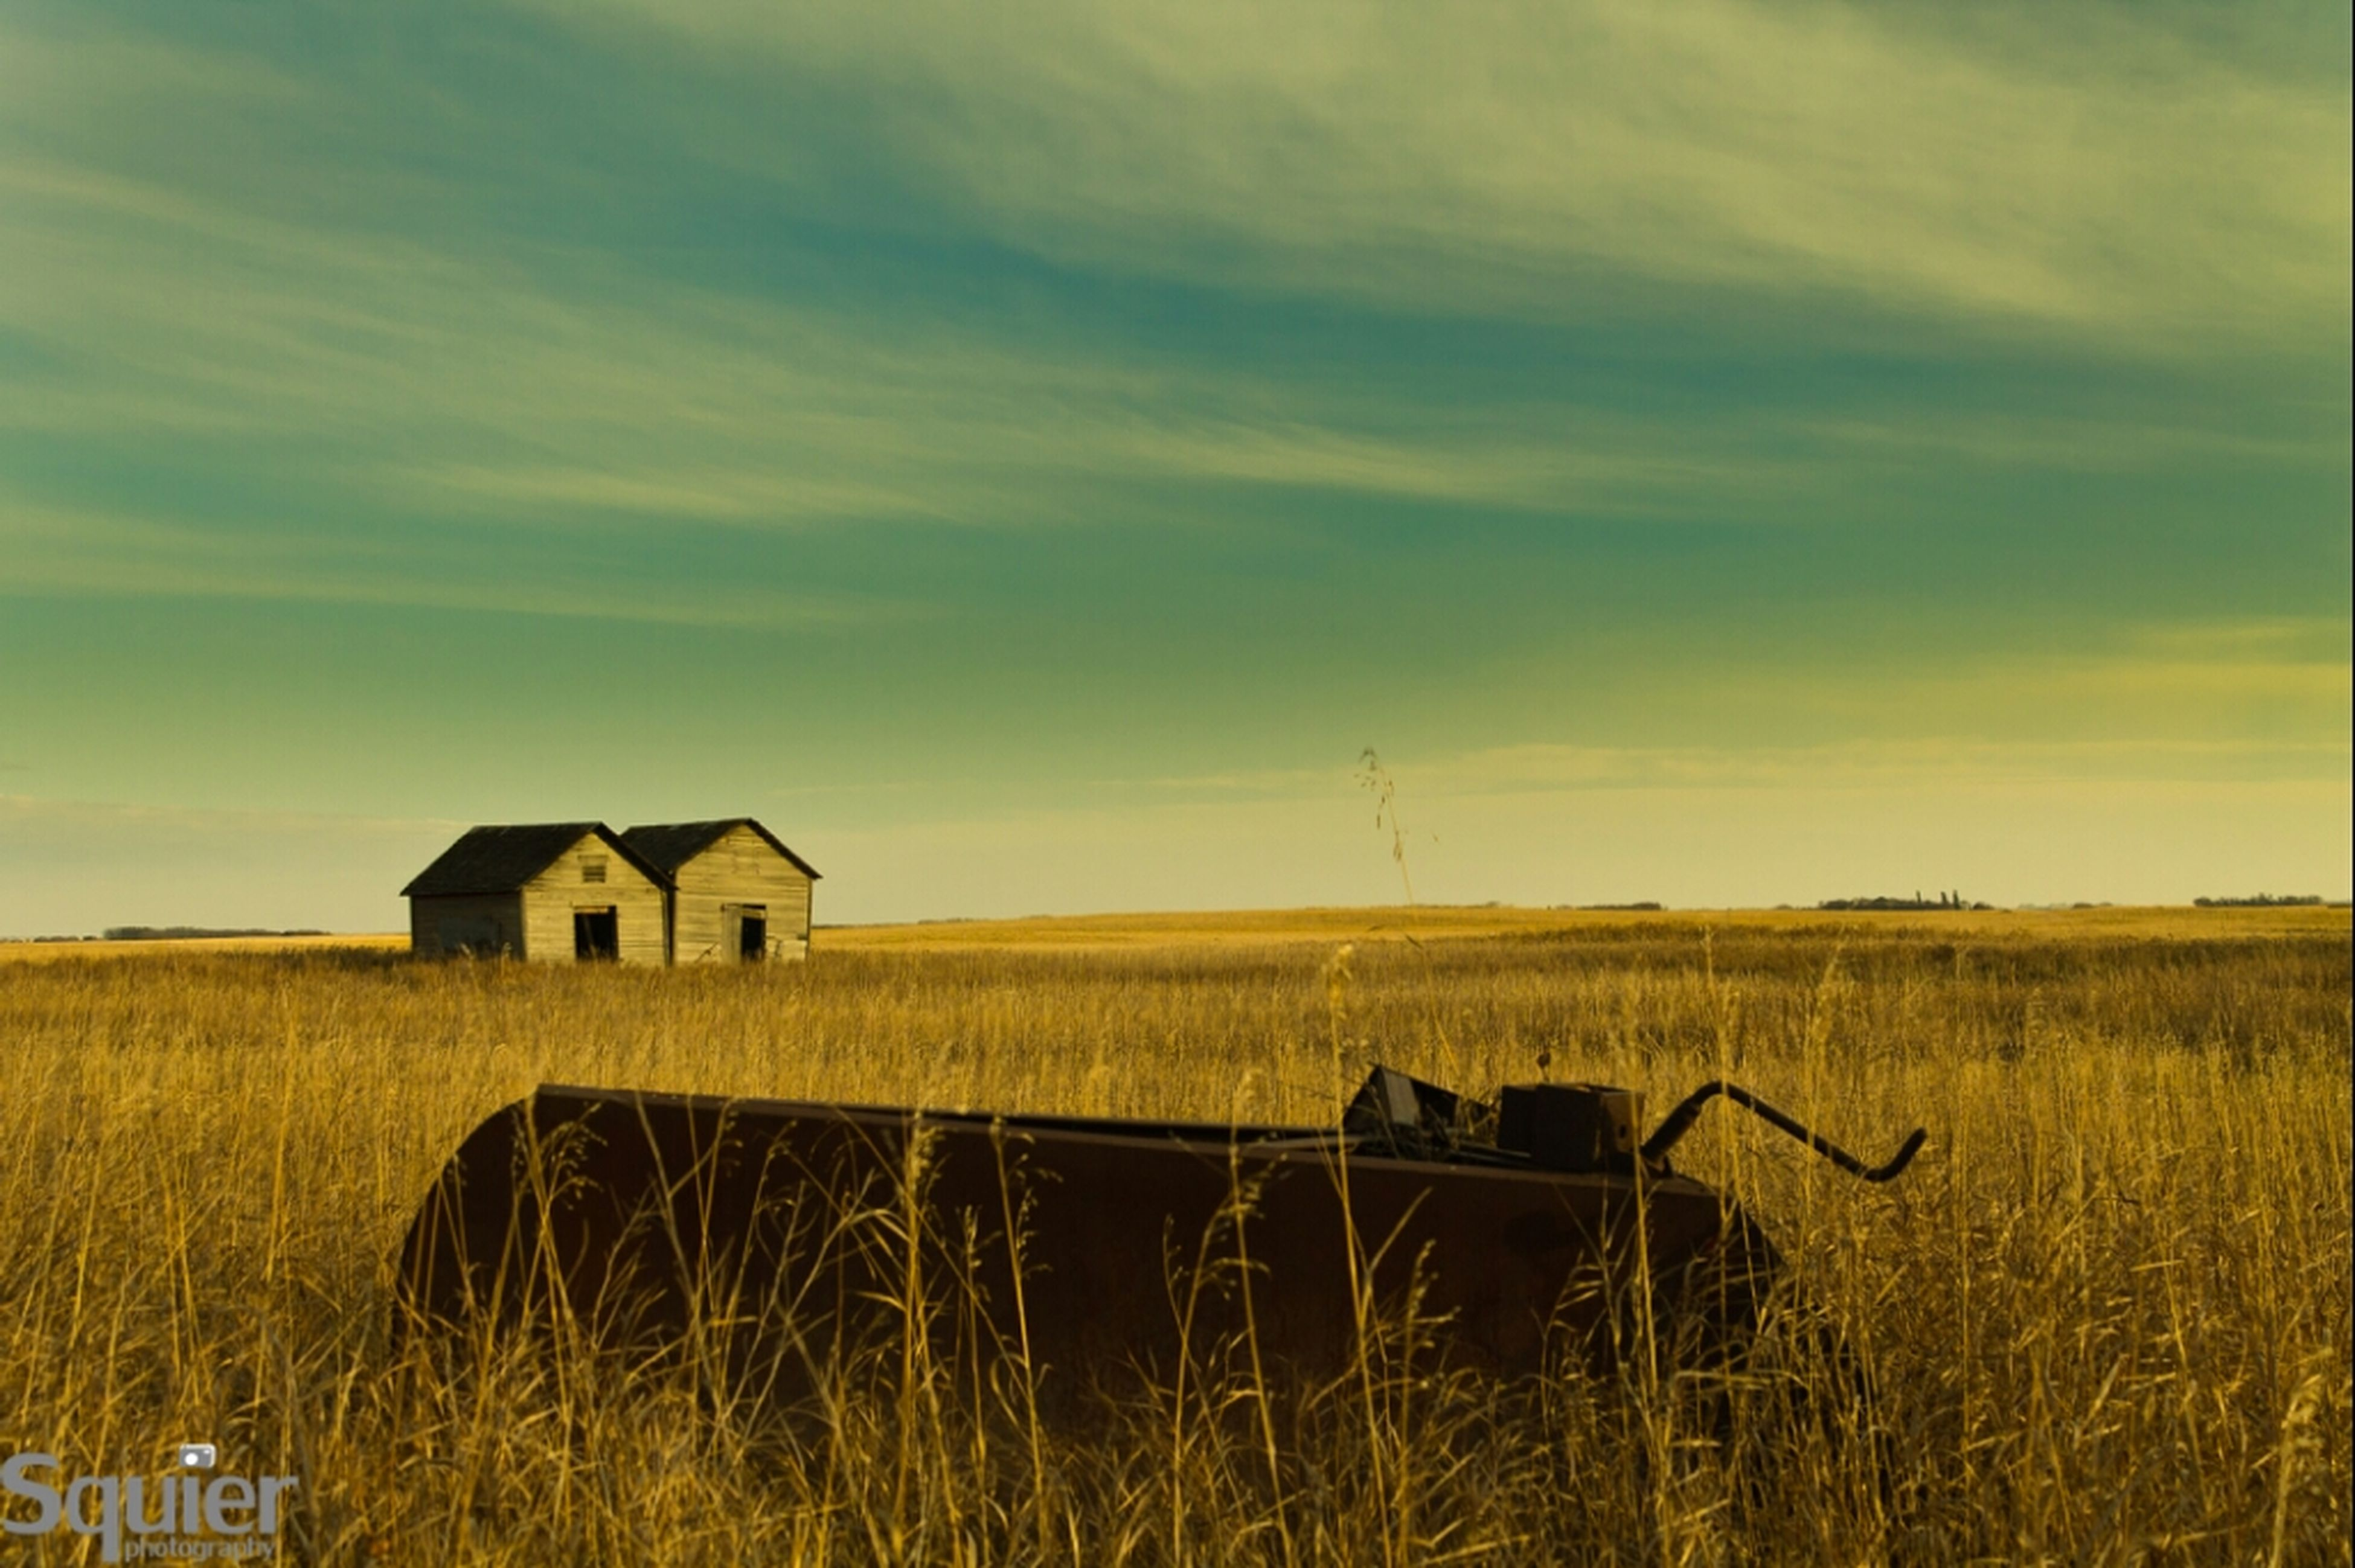 field, rural scene, agriculture, farm, sky, landscape, grass, tranquil scene, building exterior, barn, house, built structure, cloud - sky, tranquility, bale, hay, nature, crop, harvesting, architecture